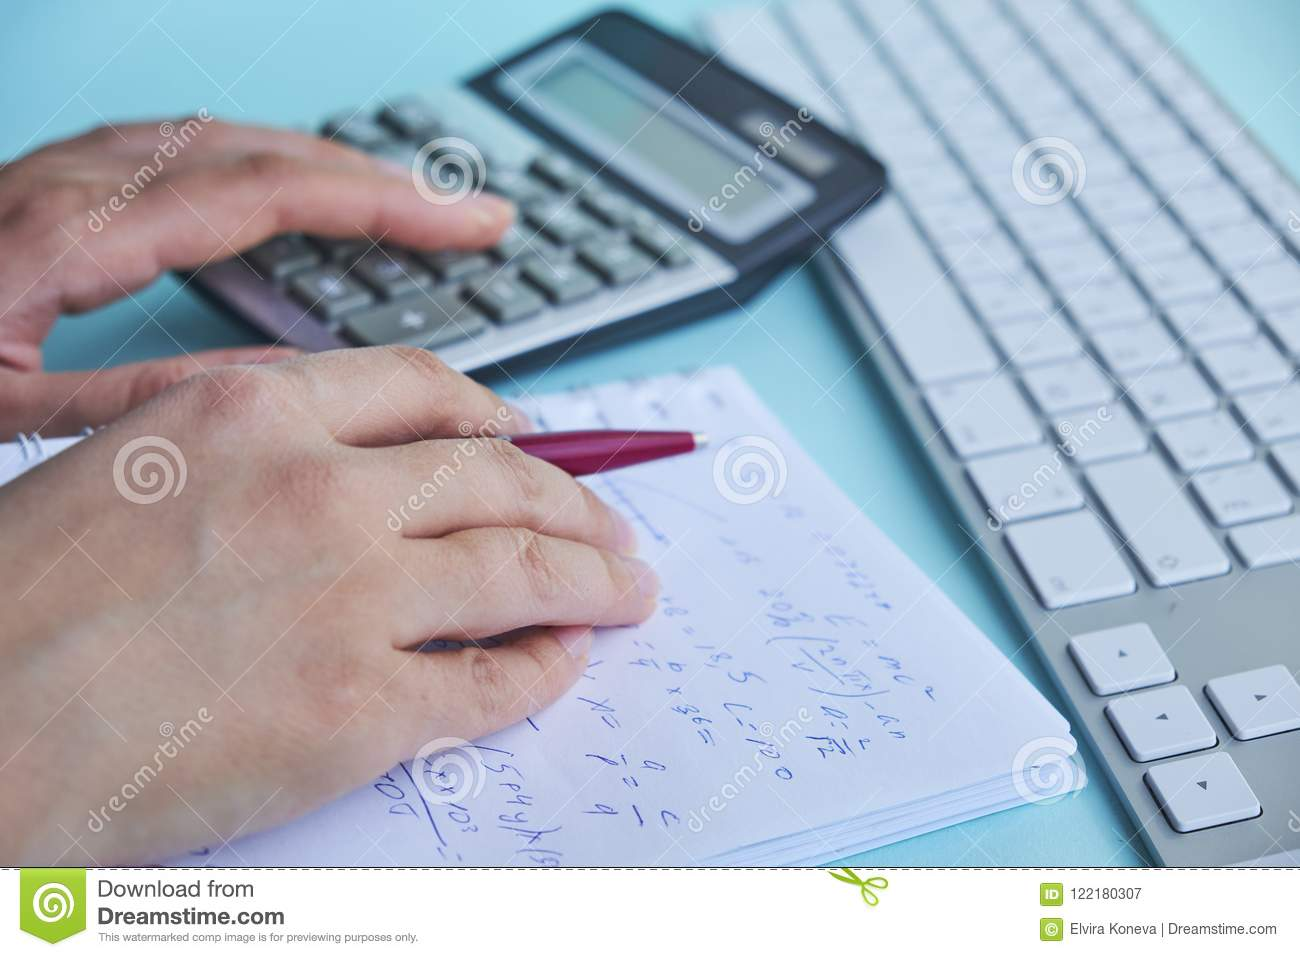 Woman Working With Calculator, Business Document And Laptop Computer